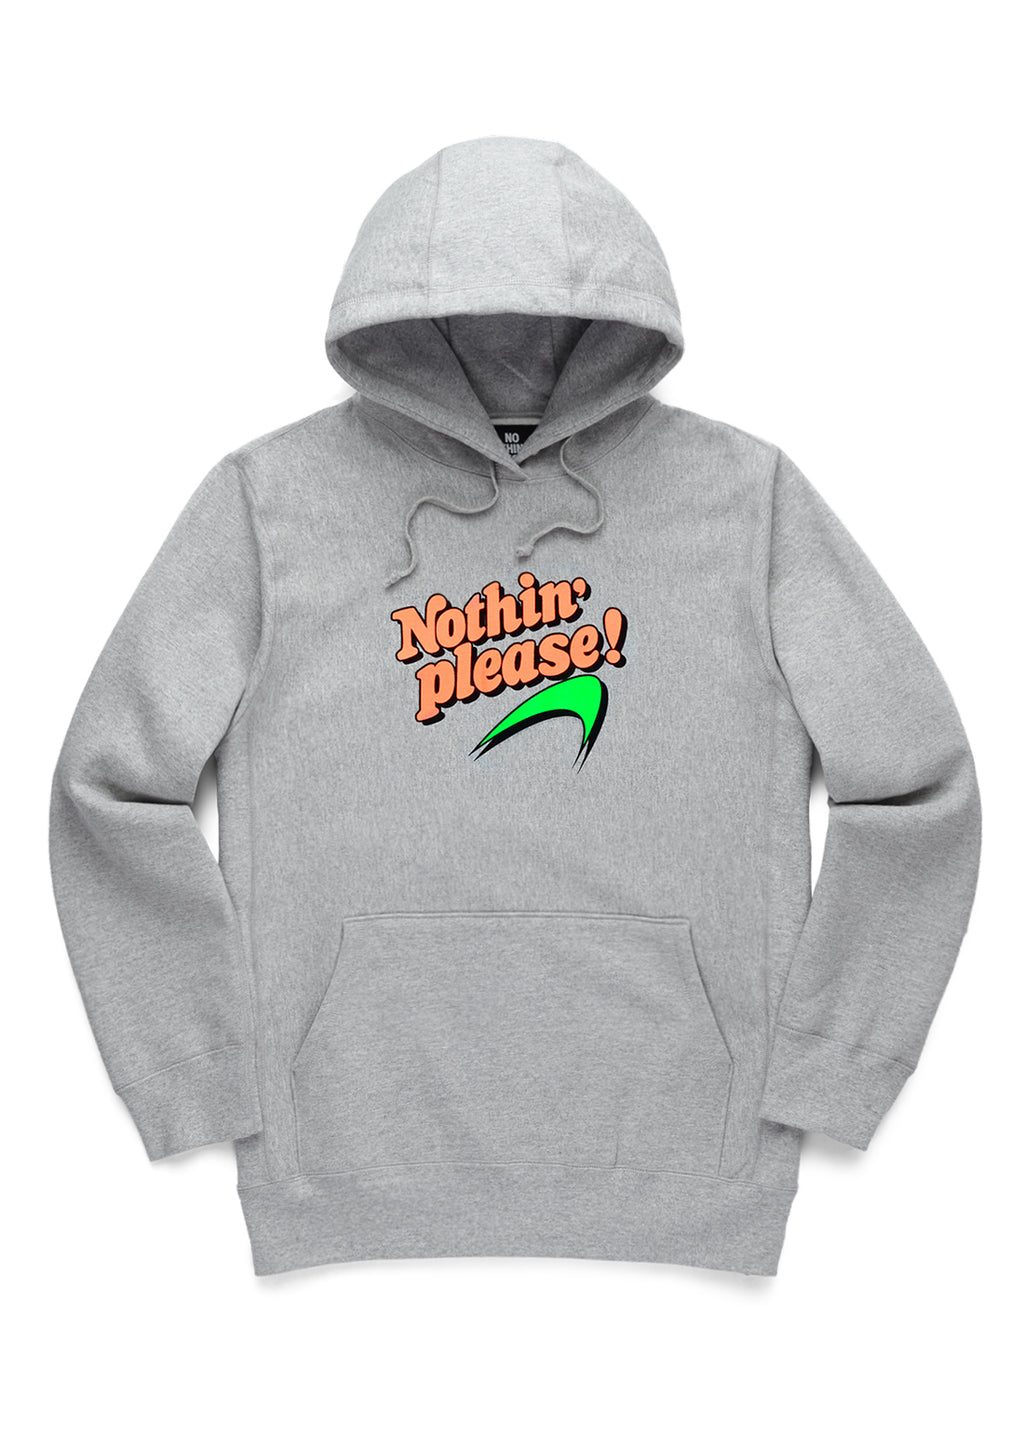 Nothin' Please Hoodie